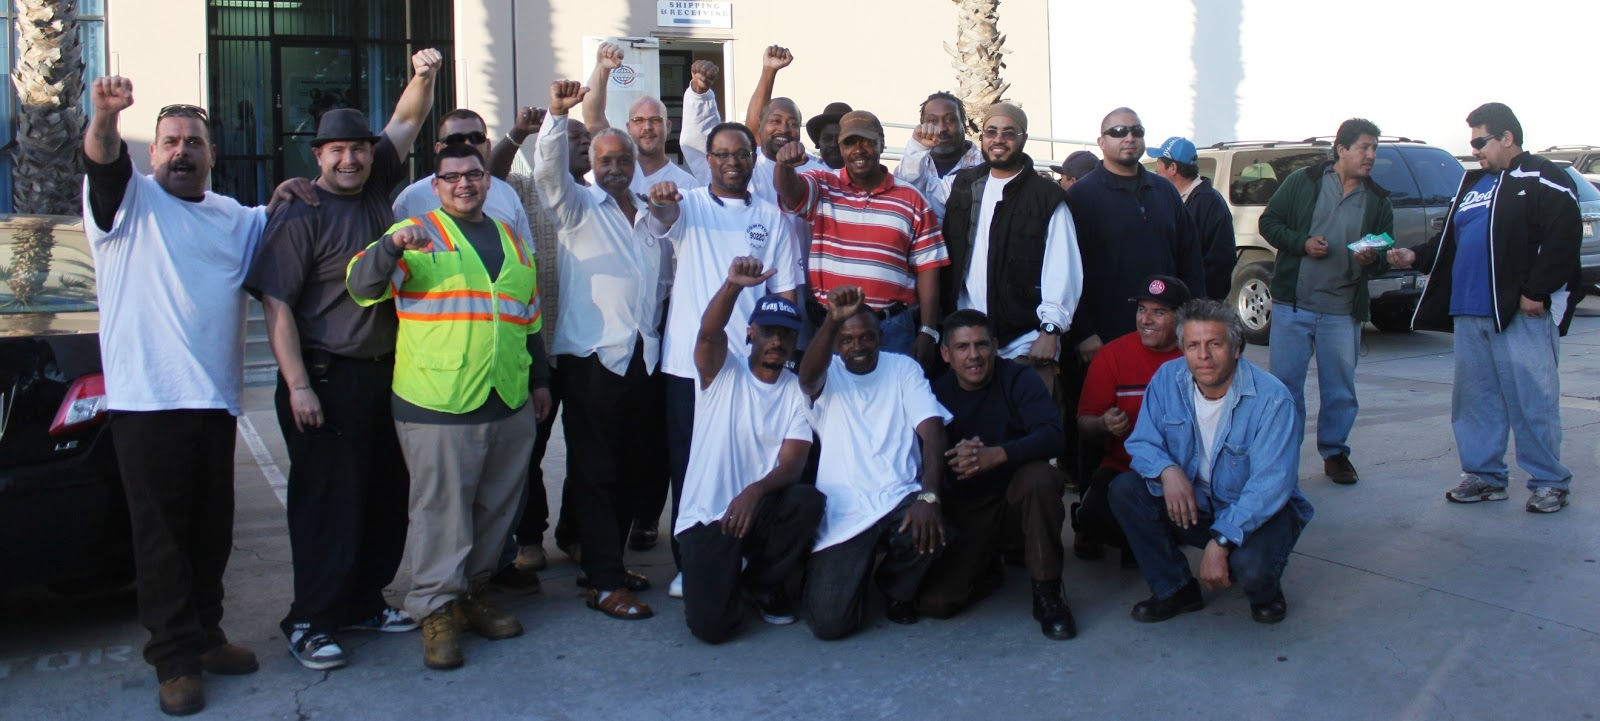 Teamster Nation: Inspired by Toll victory, 2nd group of port